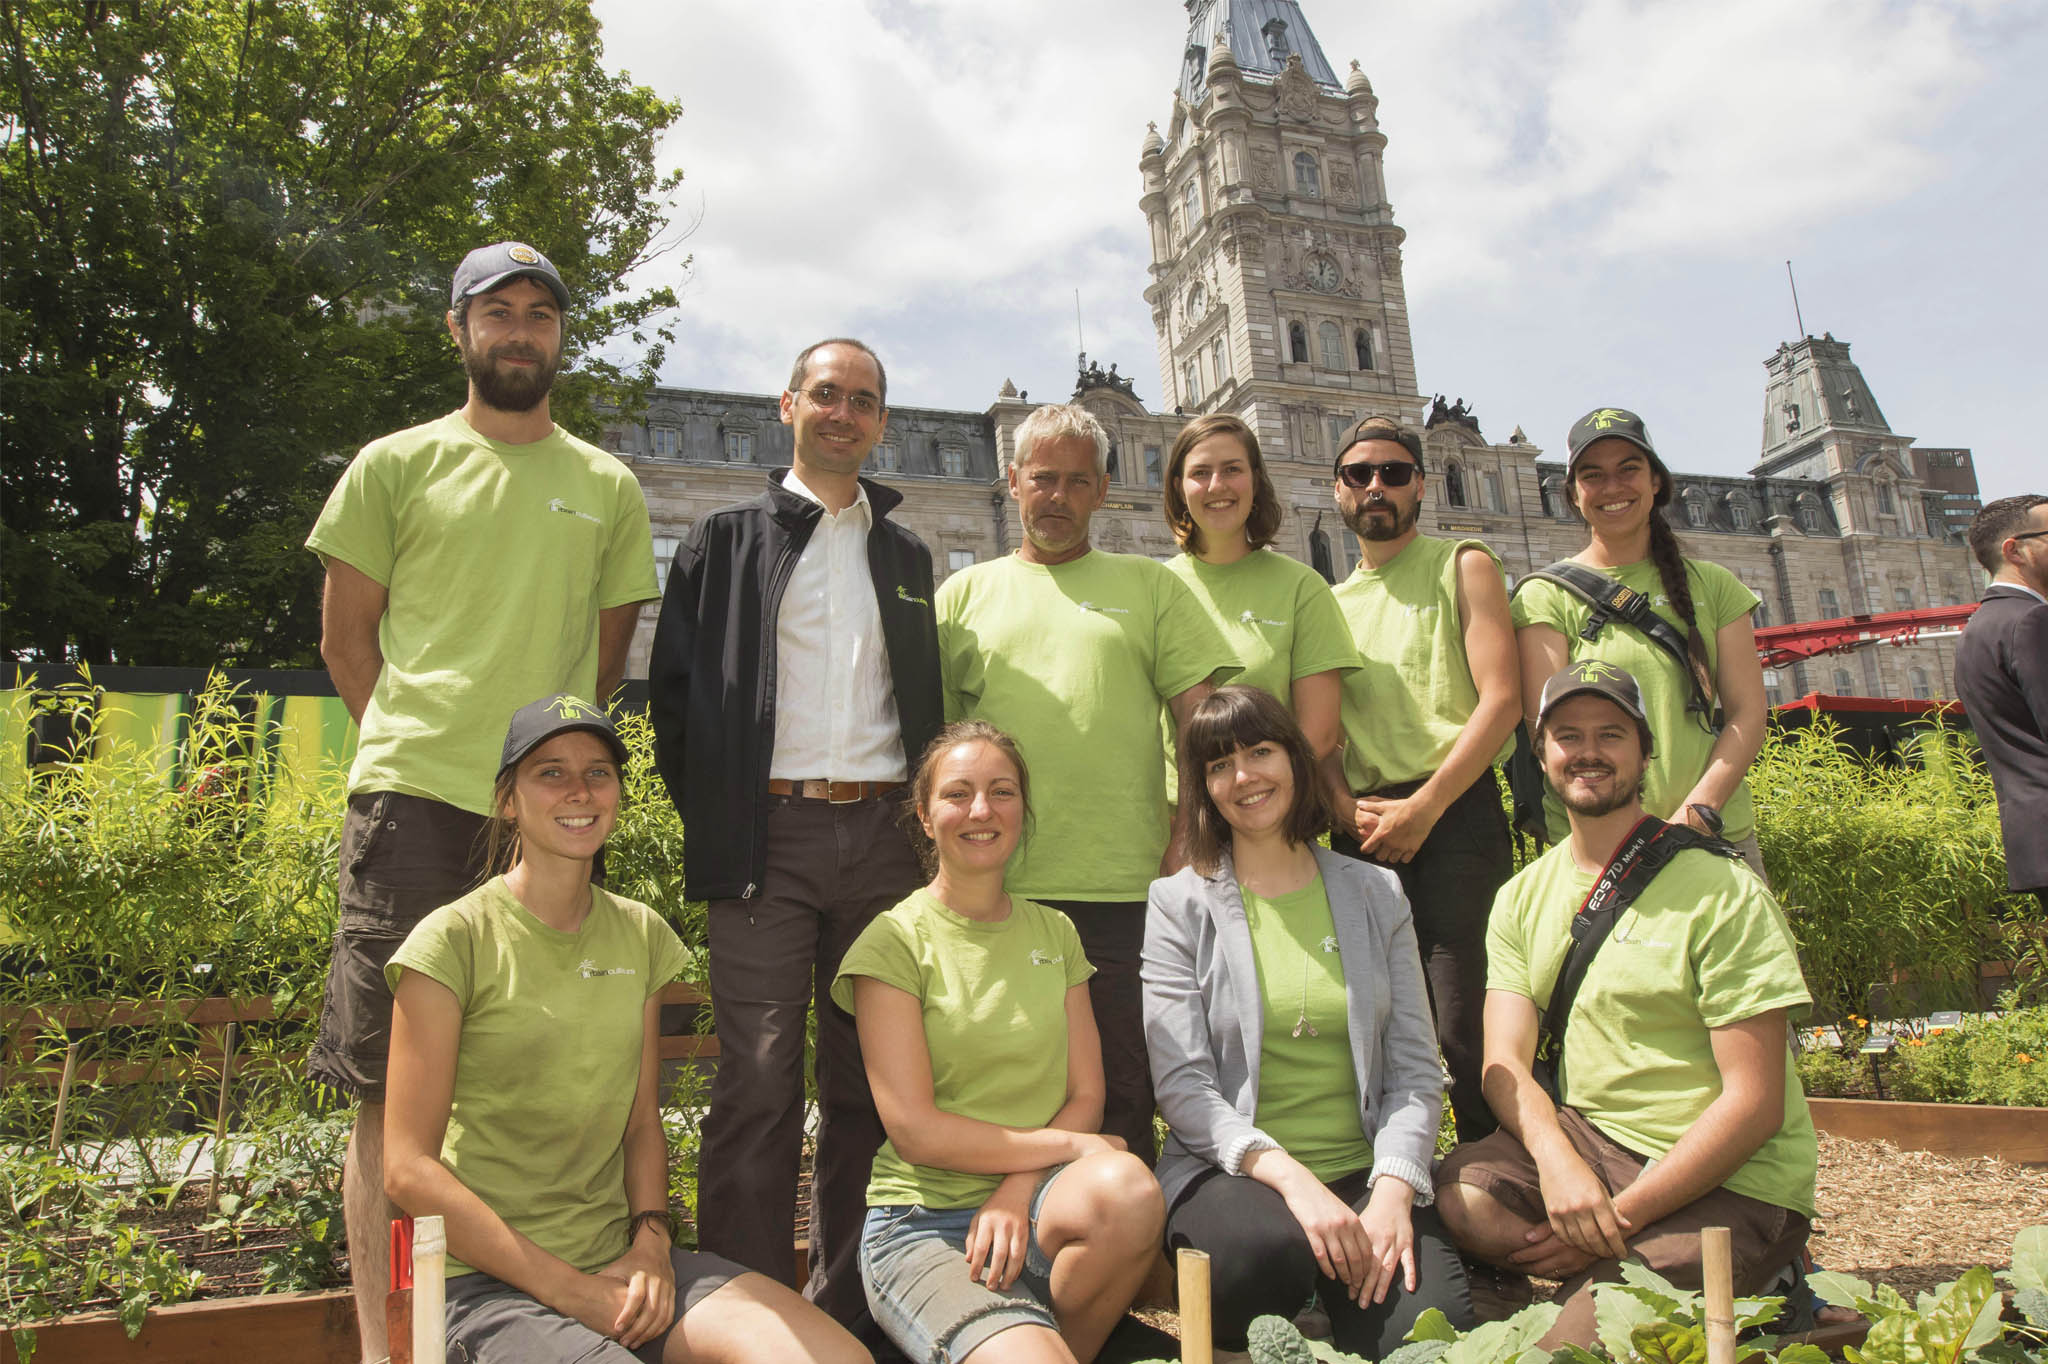 Urbainculteurs' team in front of the National Assembly of Quebec